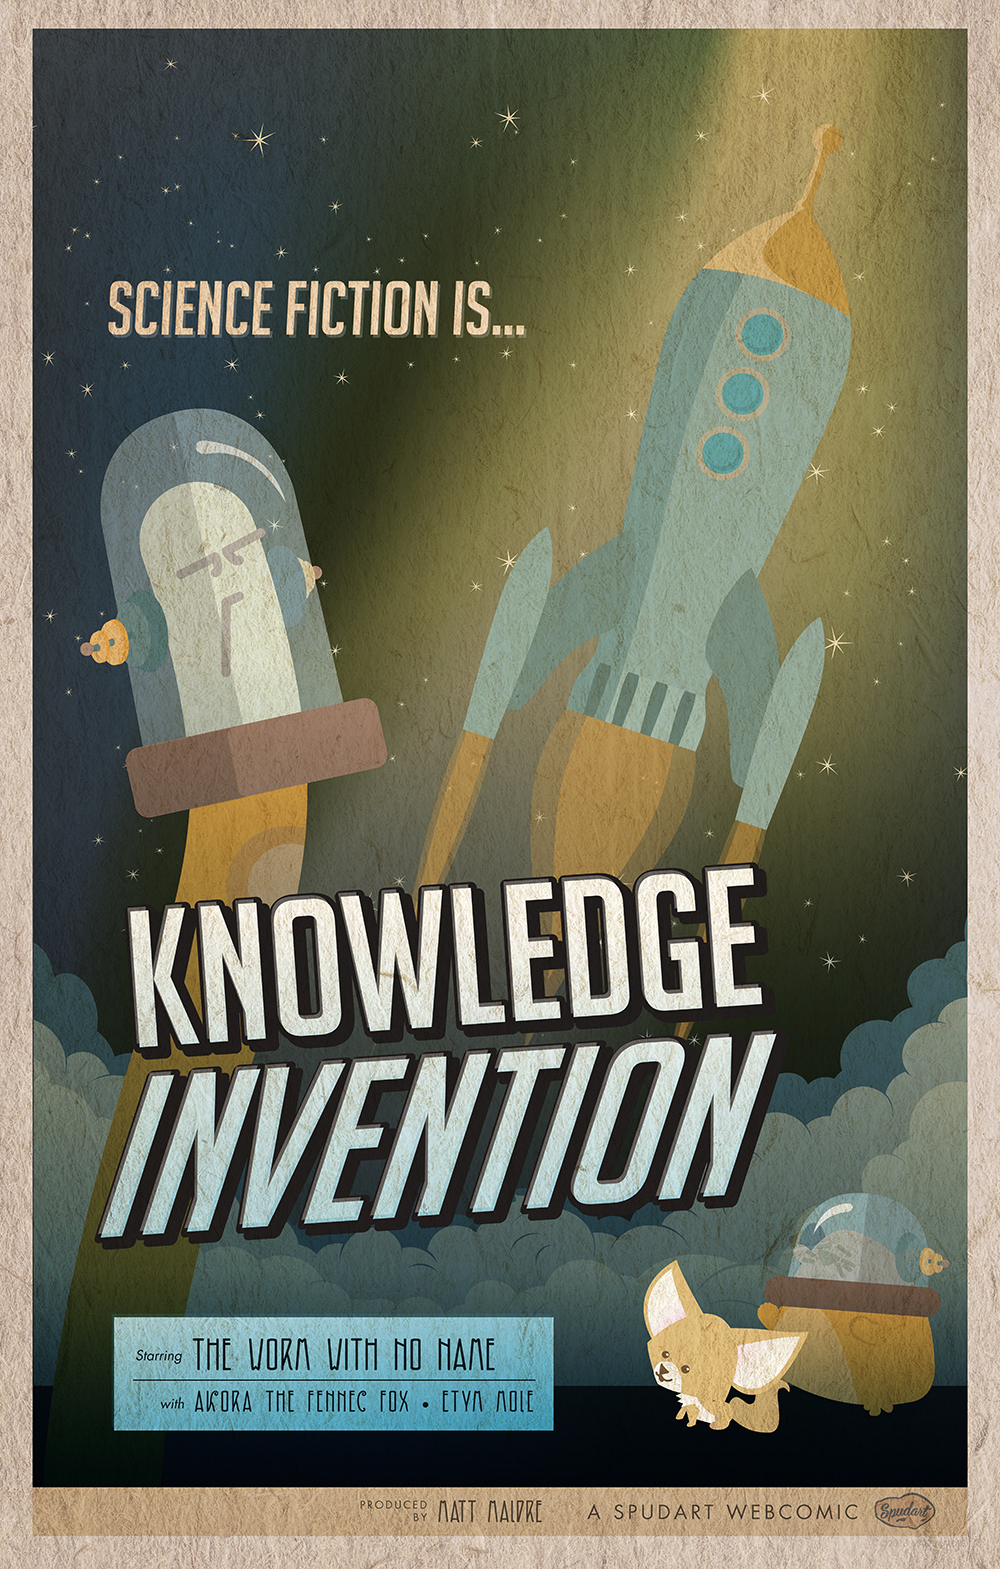 Sci fi is Knowledge Invention vintage poster